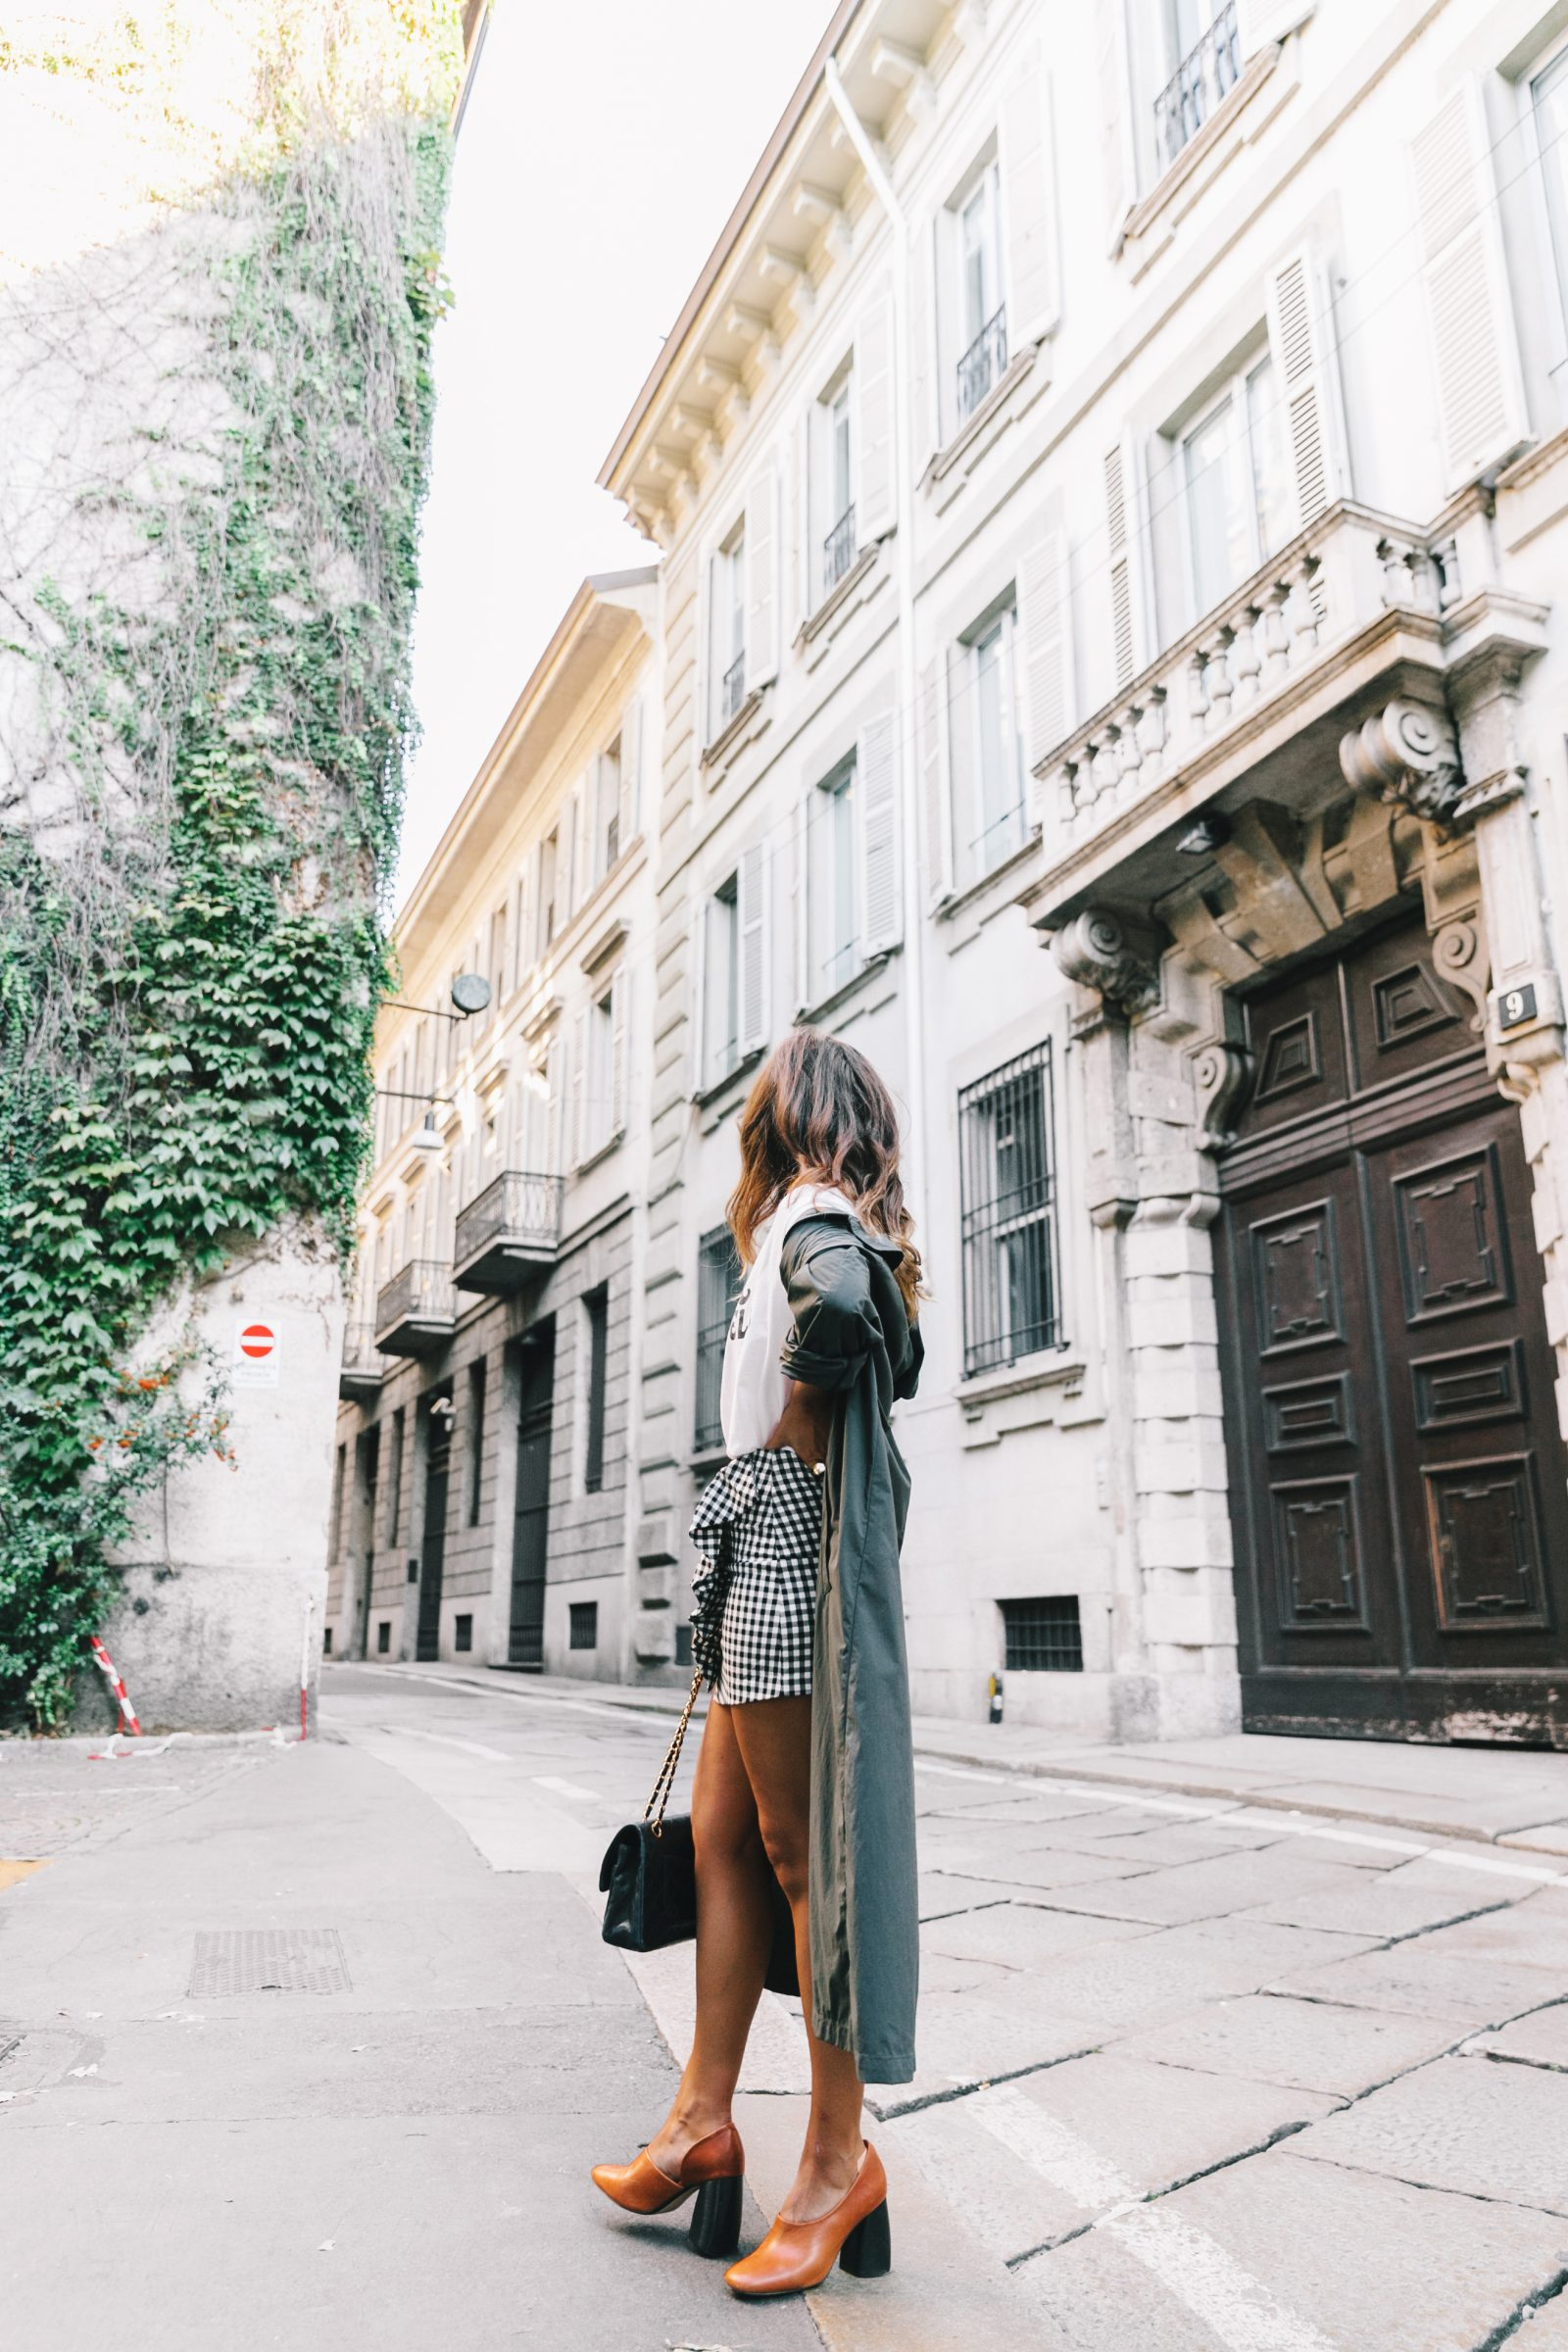 mfw-milan_fashion_week_ss17-street_style-outfits-collage_vintage-bottega_veneta-bluemarine-jil_sander-15